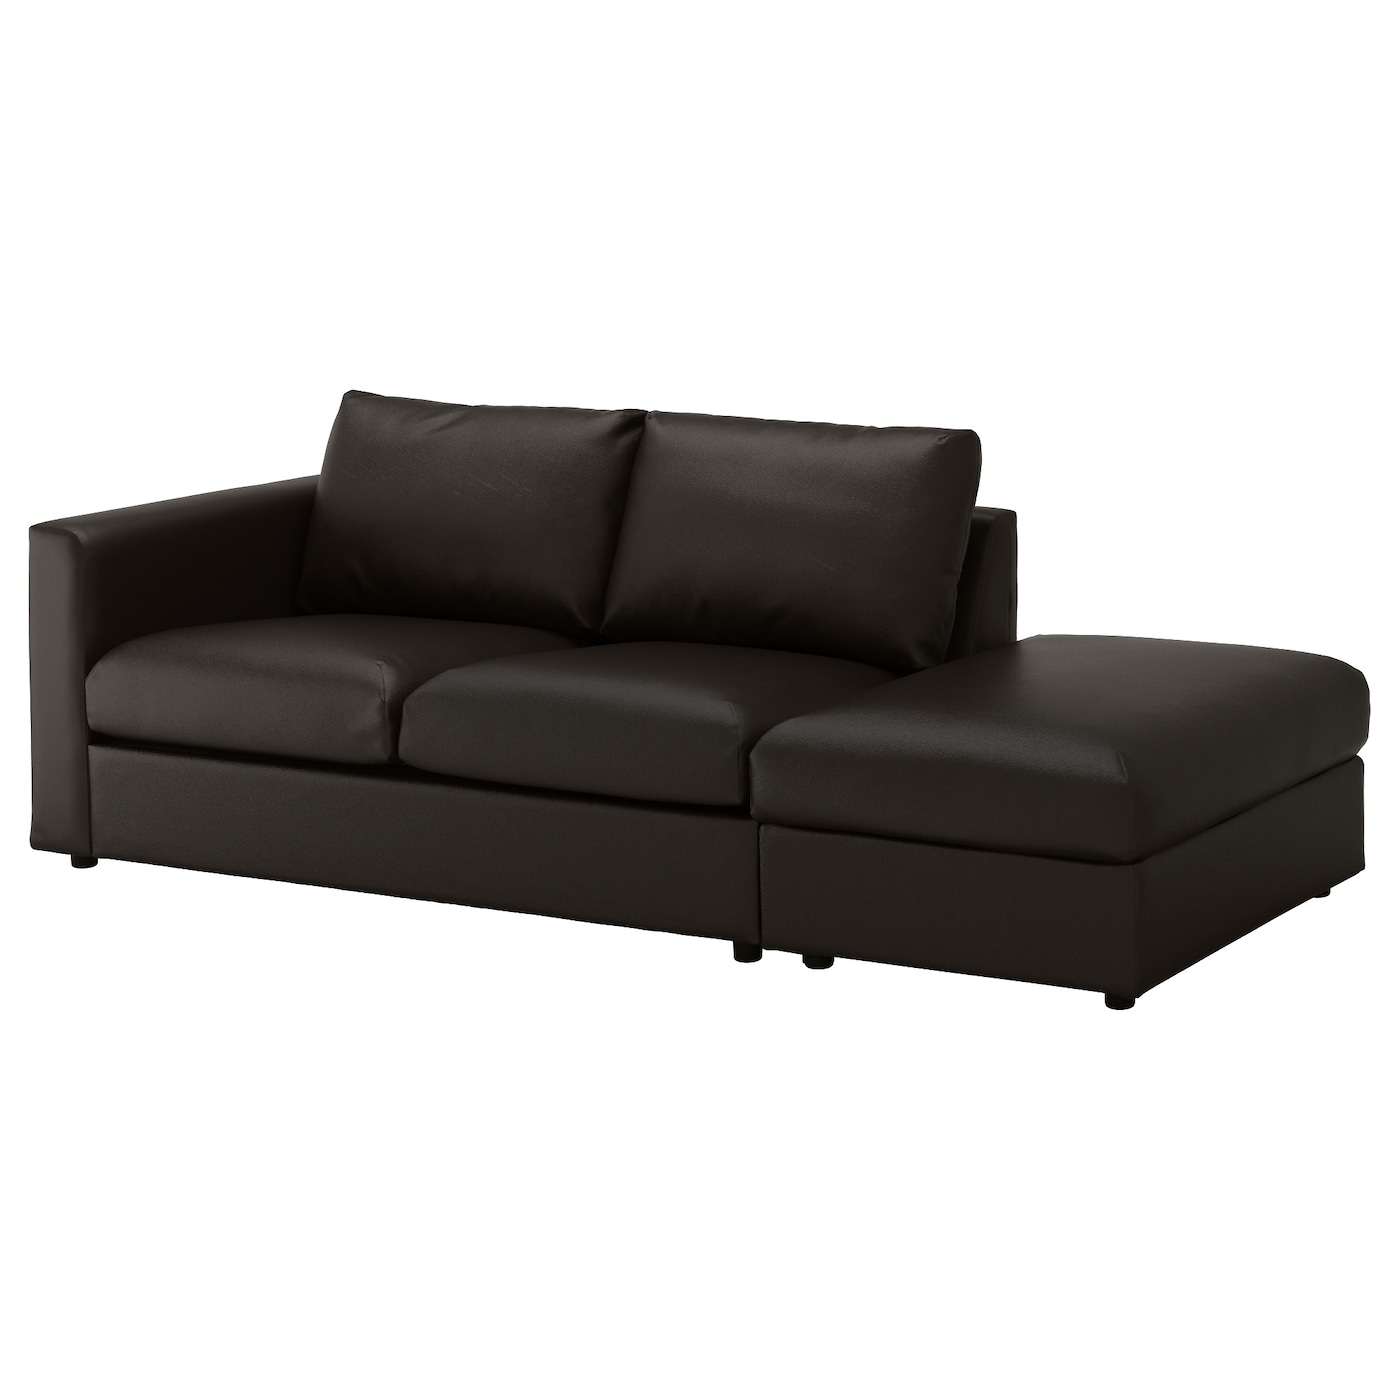 IKEA VIMLE 3-seat sofa The cover is easy to keep clean as it can be wiped clean with a damp cloth.